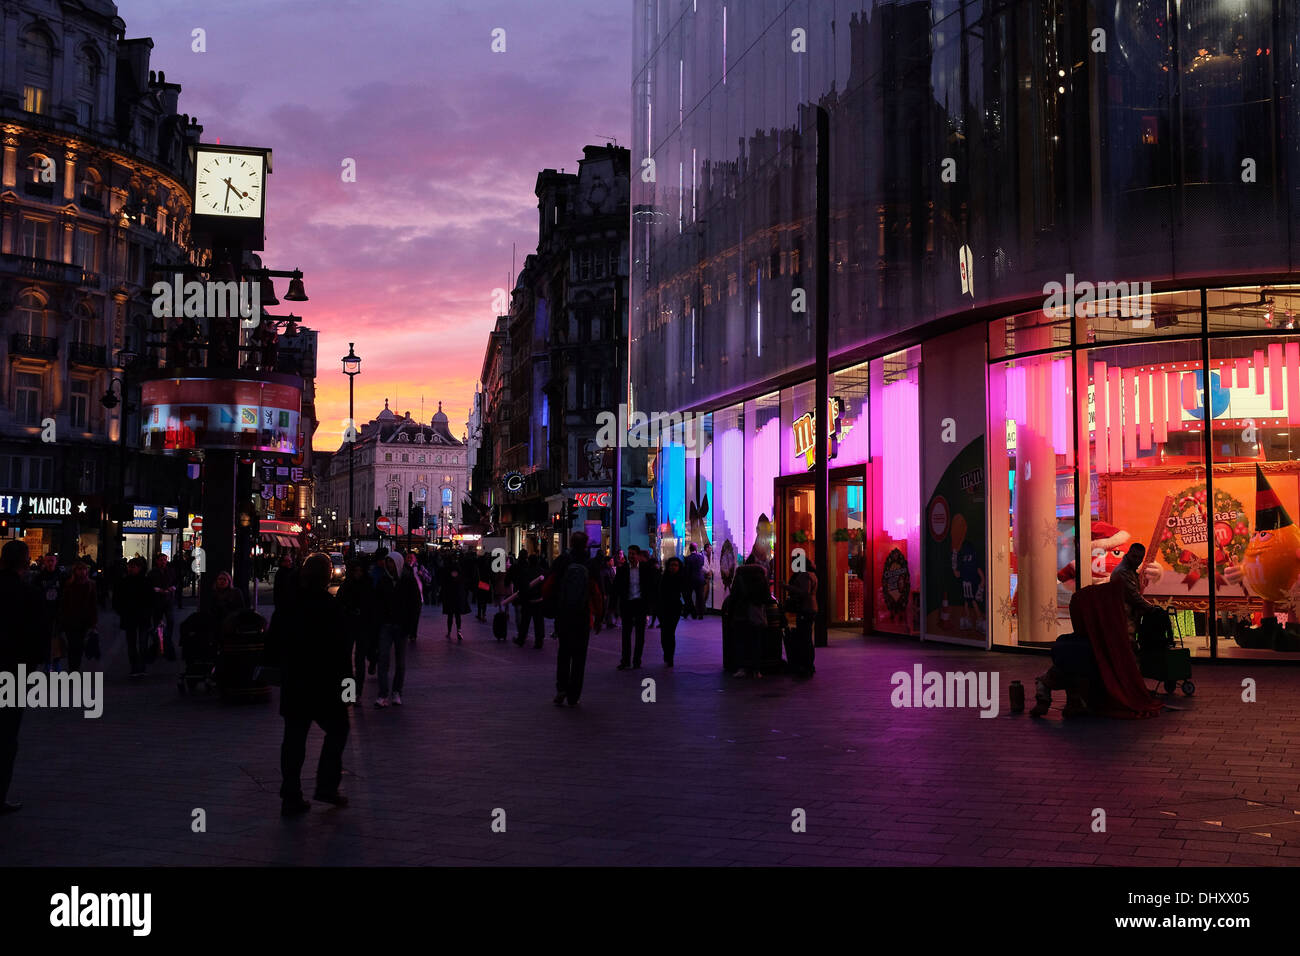 Autumn sunset in London from Leicester Square. - Stock Image